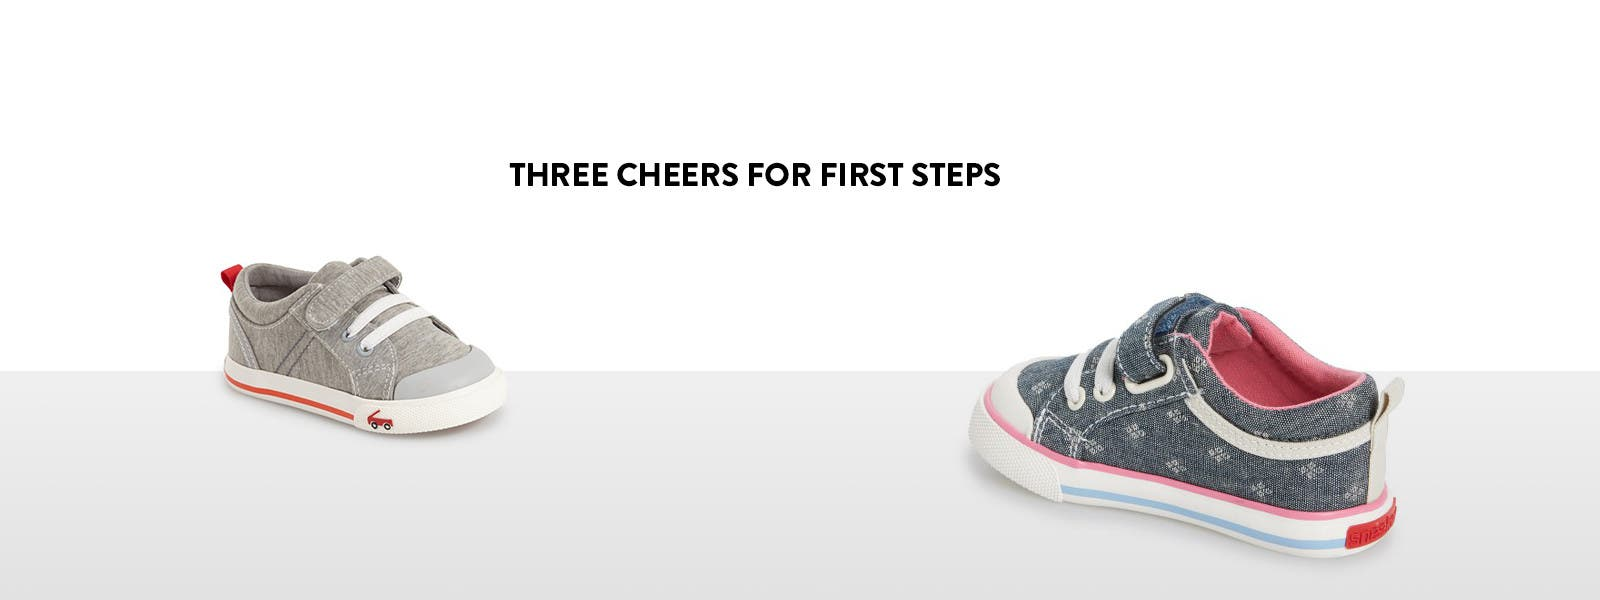 converse shoes clipart. three cheers for first steps and walker shoes your little ones. converse clipart n